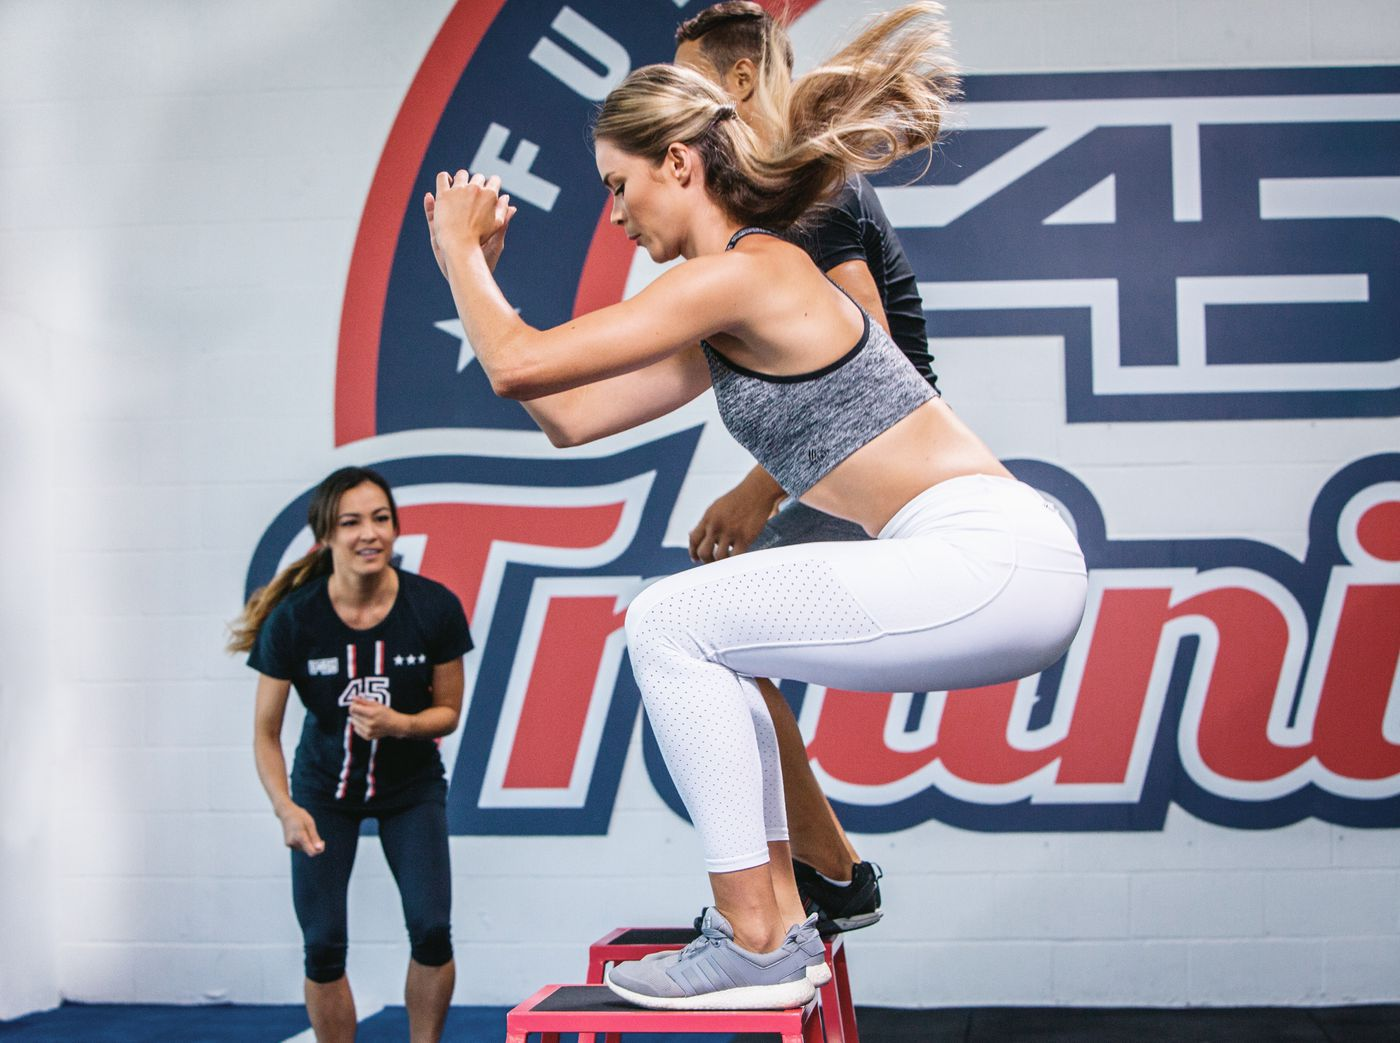 F45 is the most popular HIIT workout you've never heard of - Vox